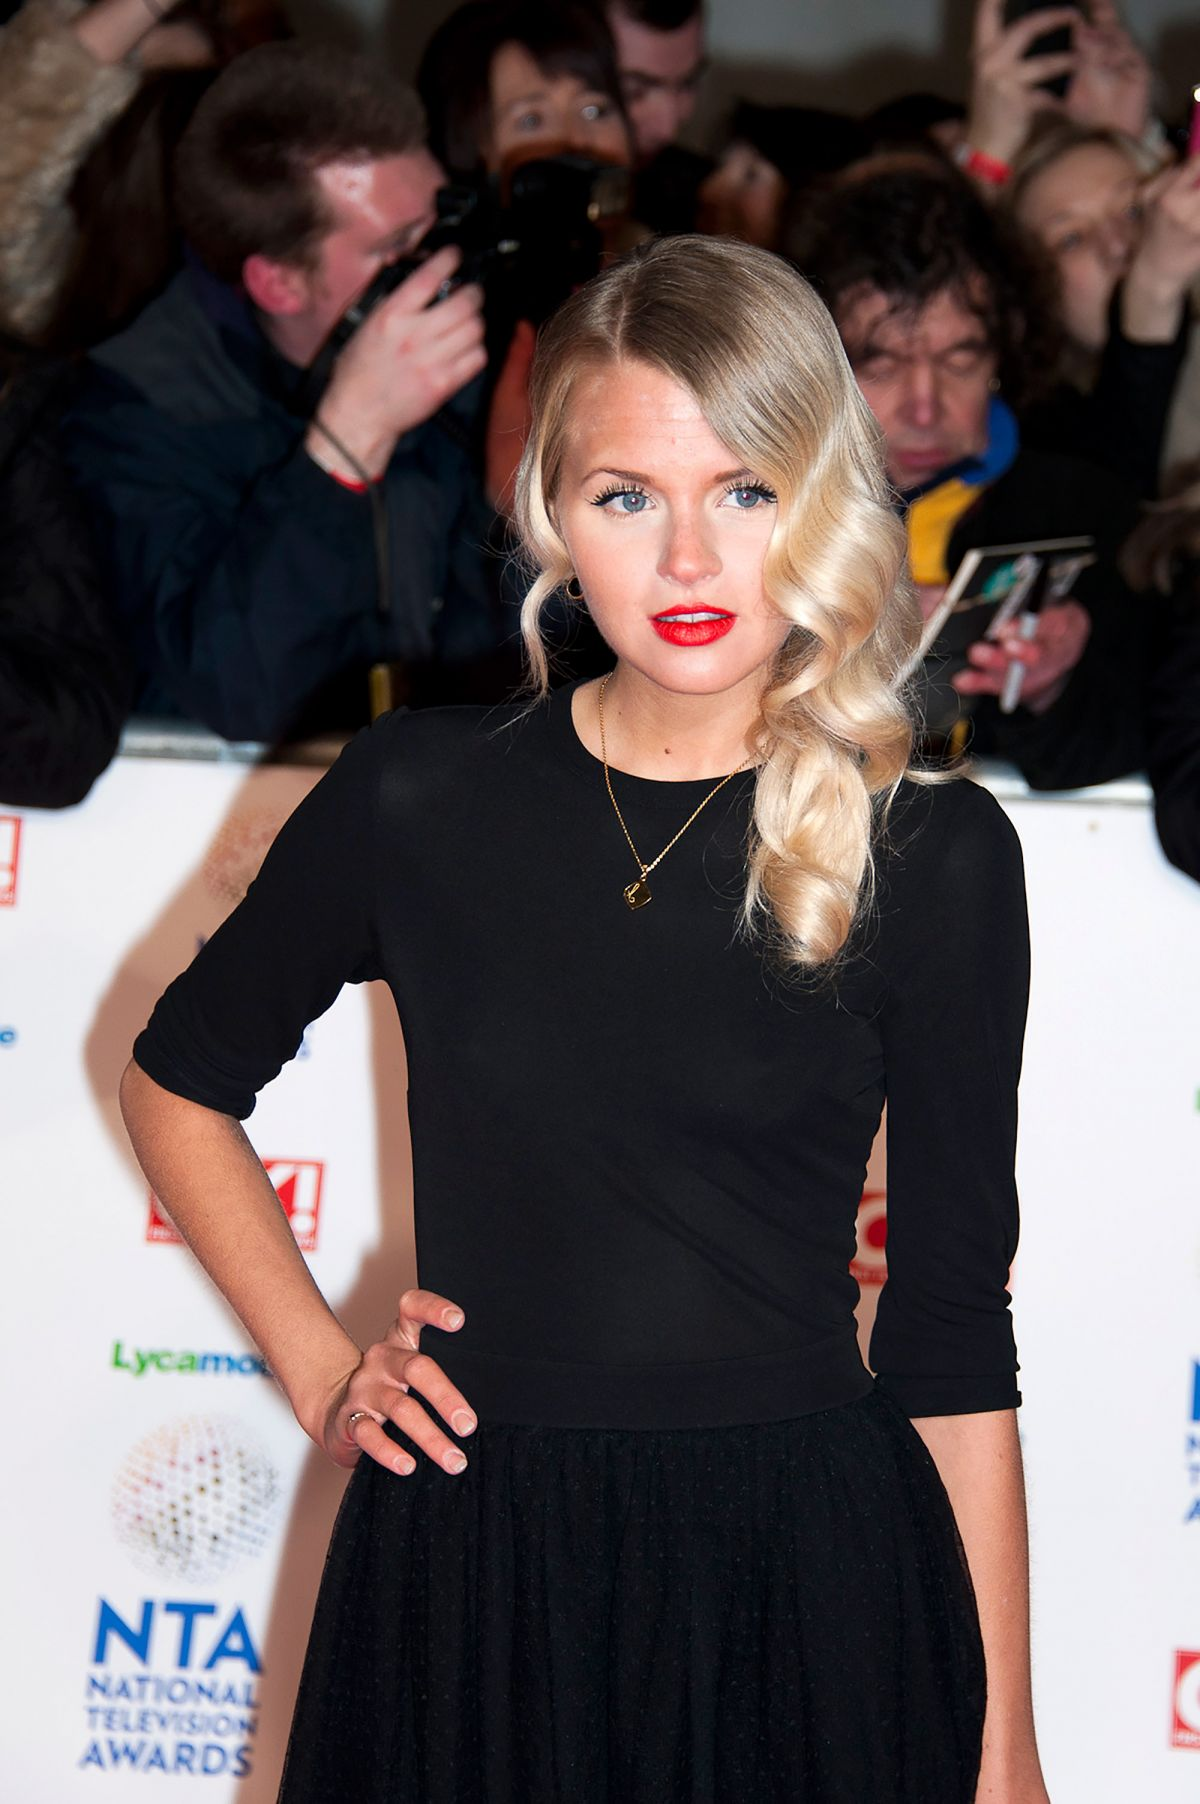 HETTI BYWATER at 2014 National Television Awards in London